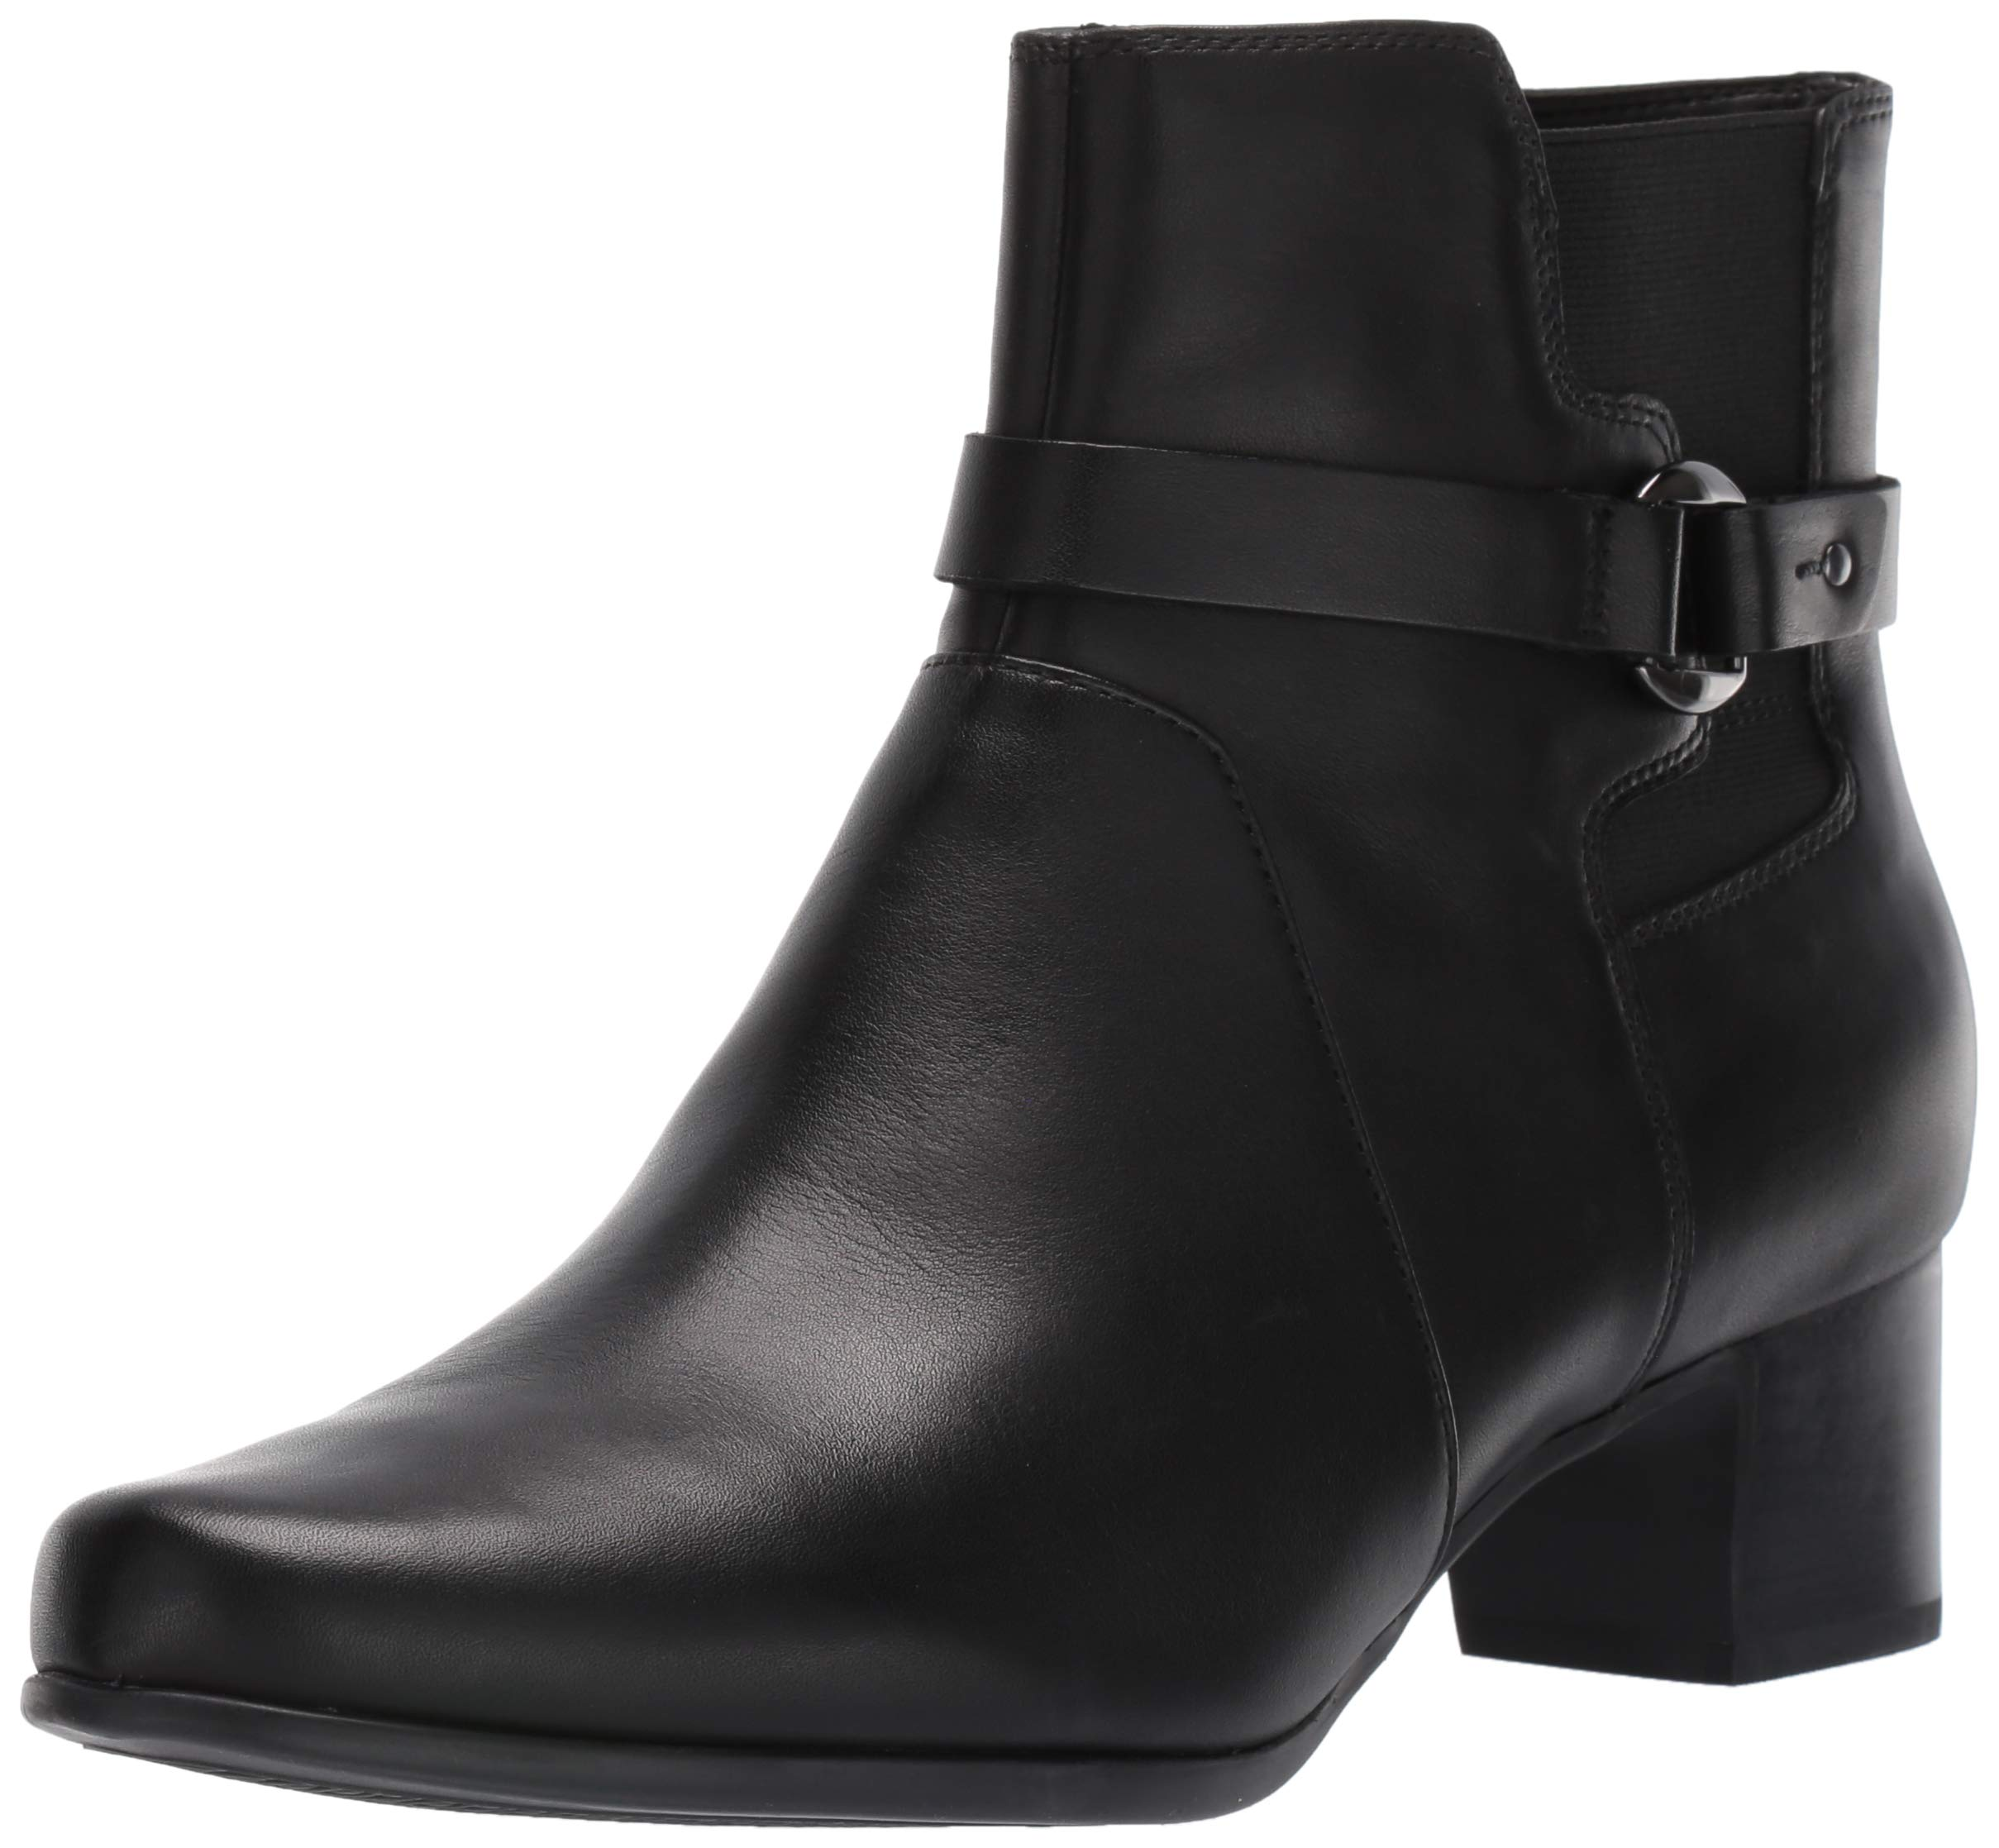 CLARKS Women's Un Damson Mid Ankle Boot, Black Leather, 100 M US by CLARKS